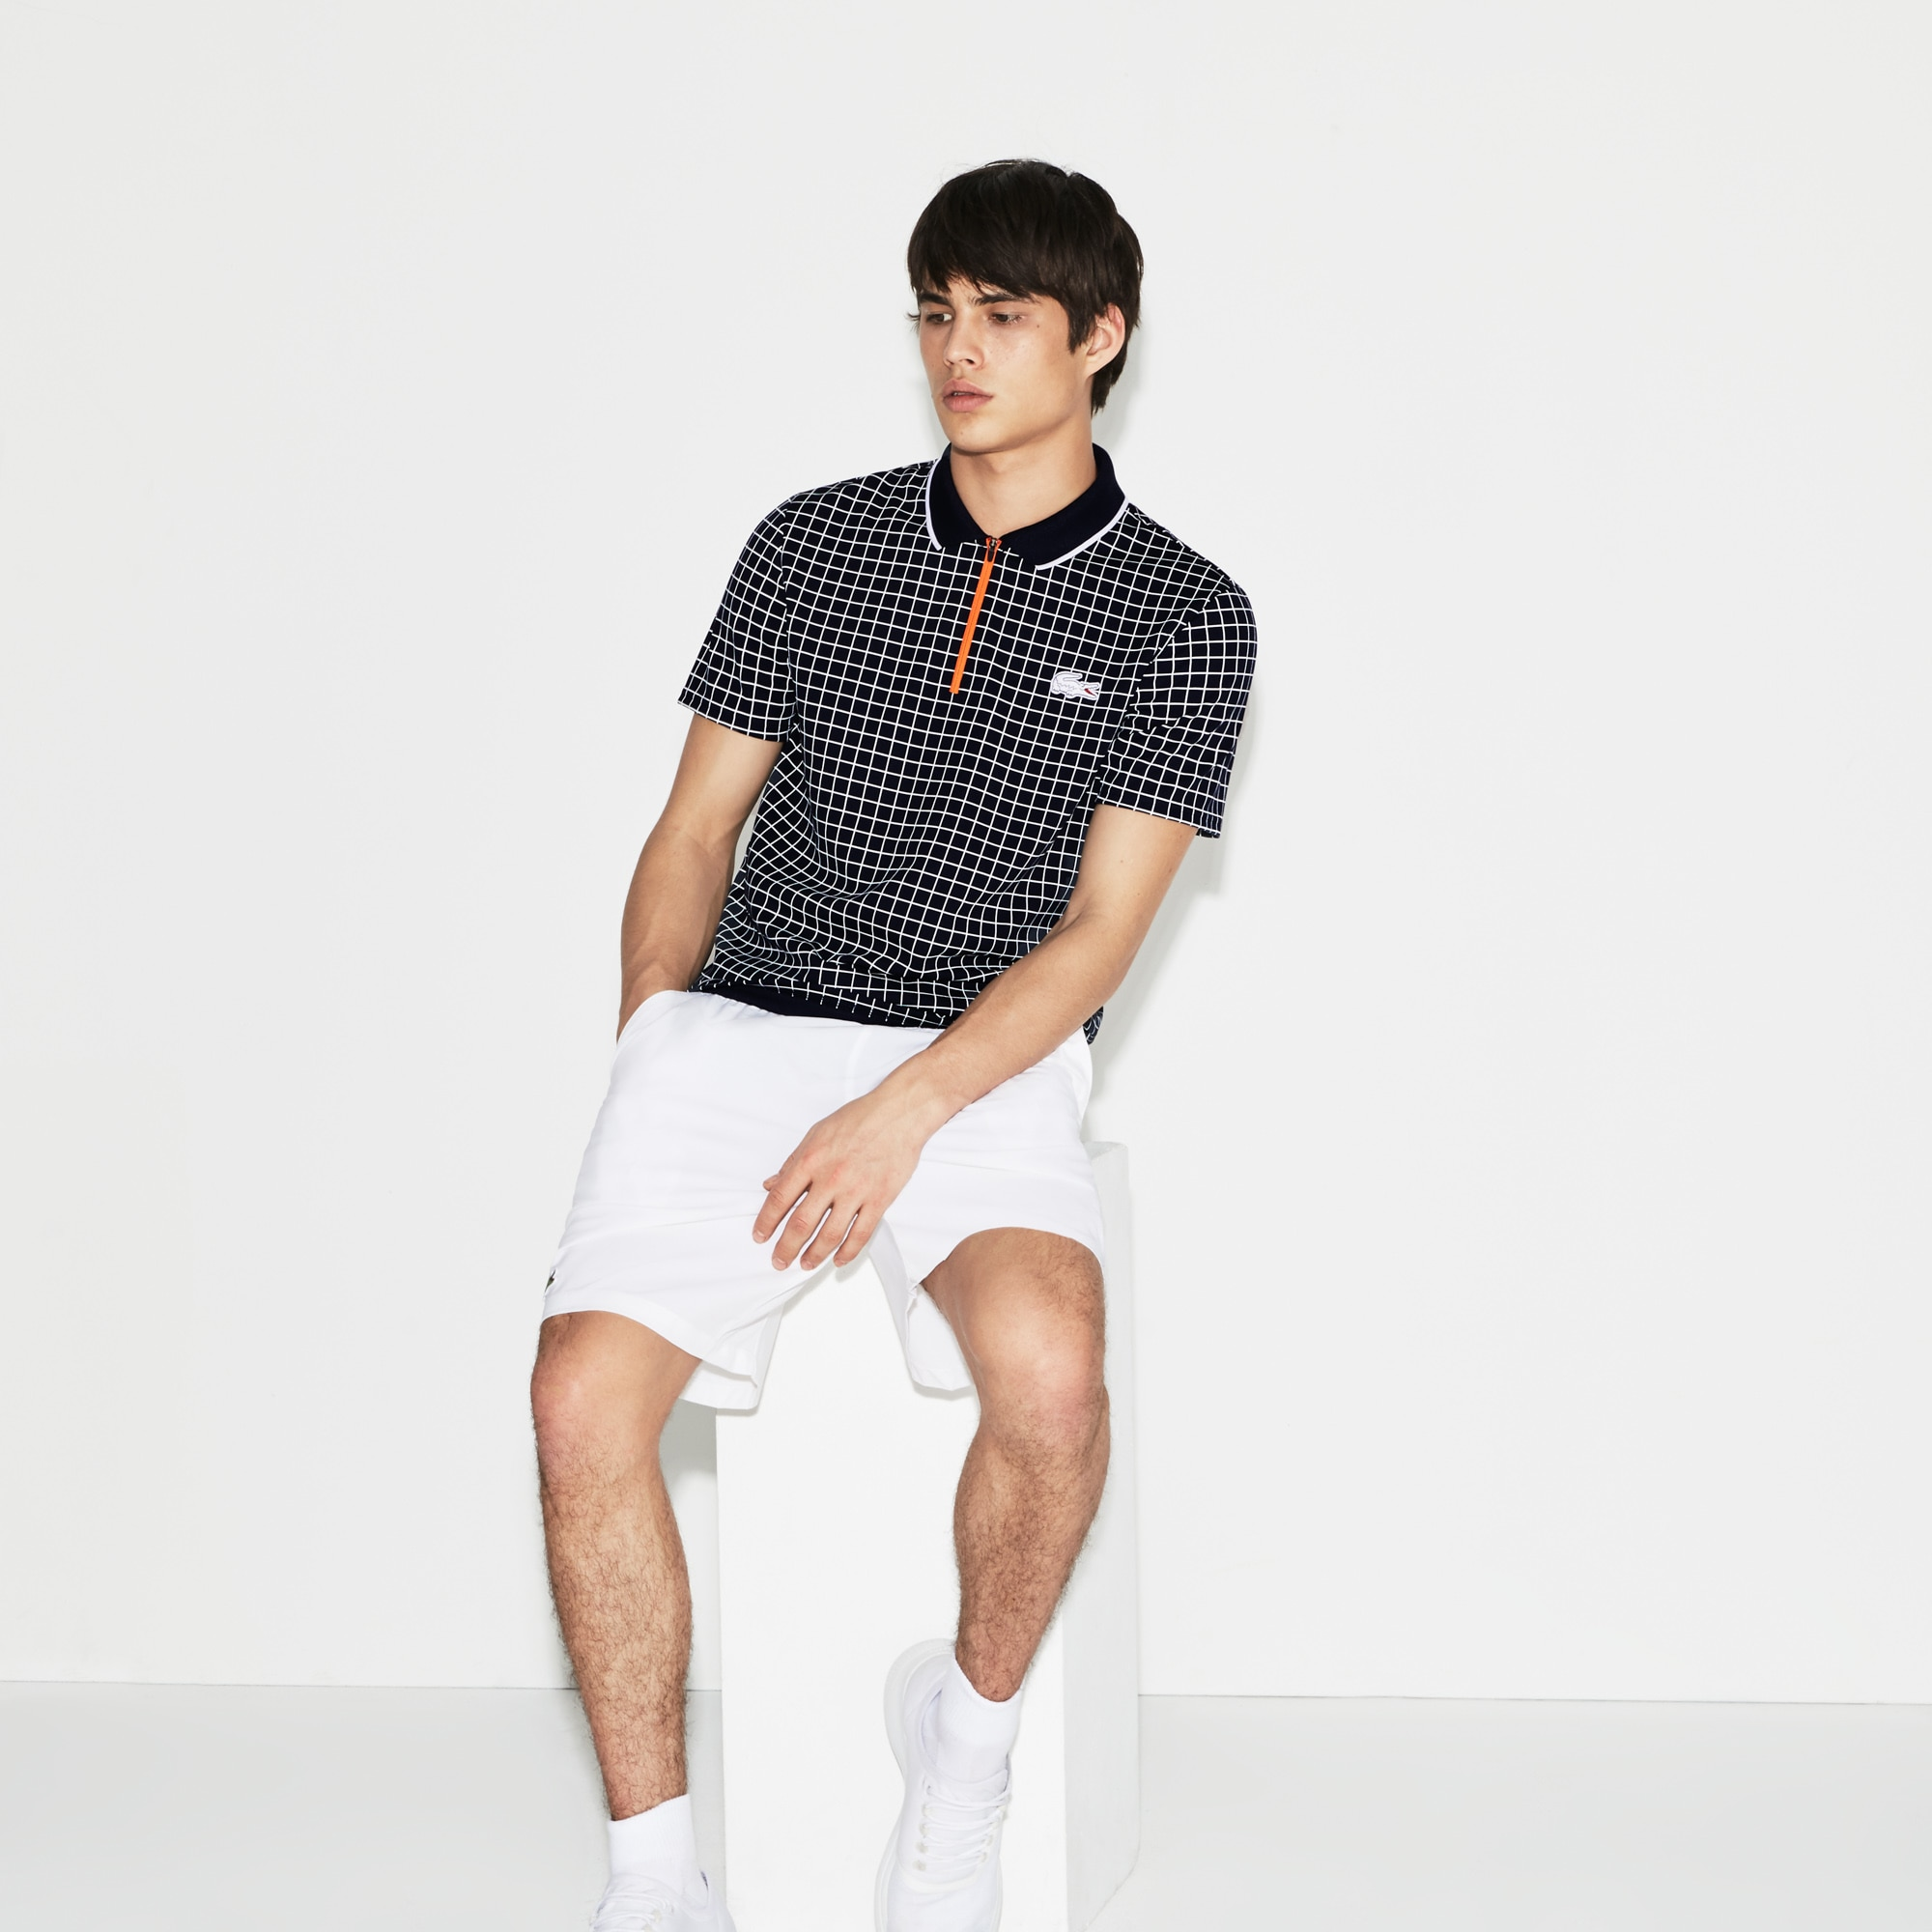 Men's Lacoste SPORT Roland Garros Edition Print Technical Piqué Polo Shirt